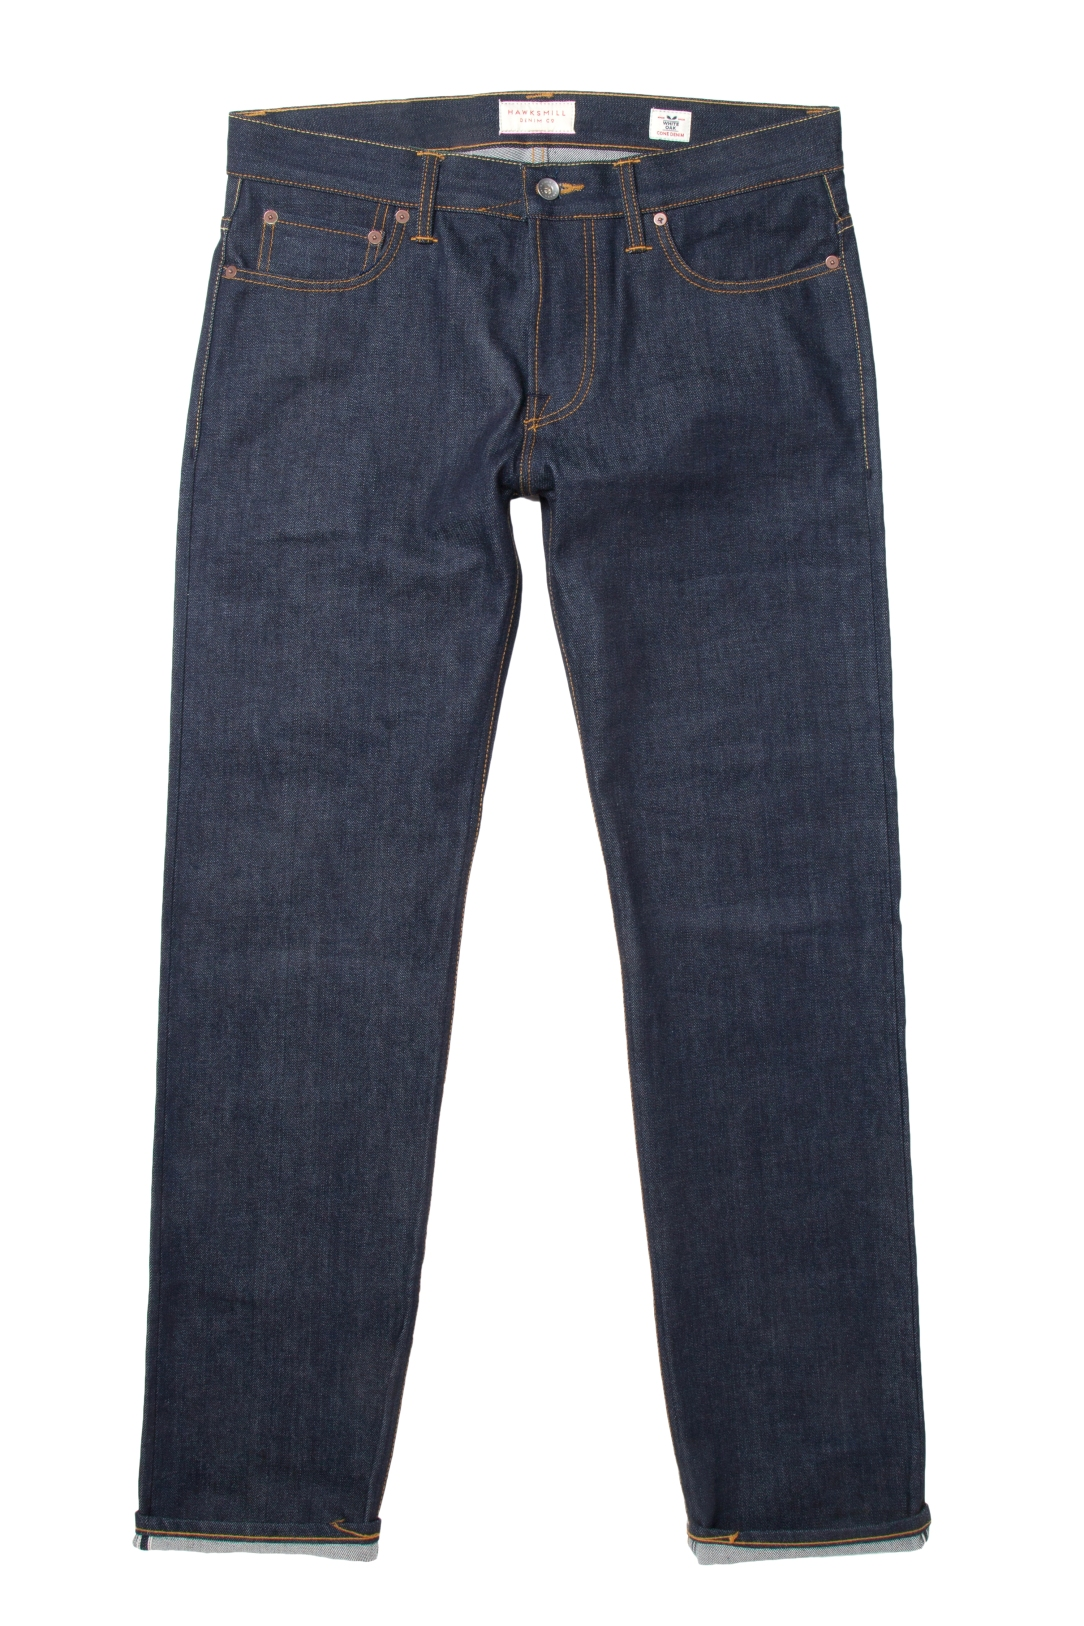 Hawskmill-Loose Tapered Cone Denim 1